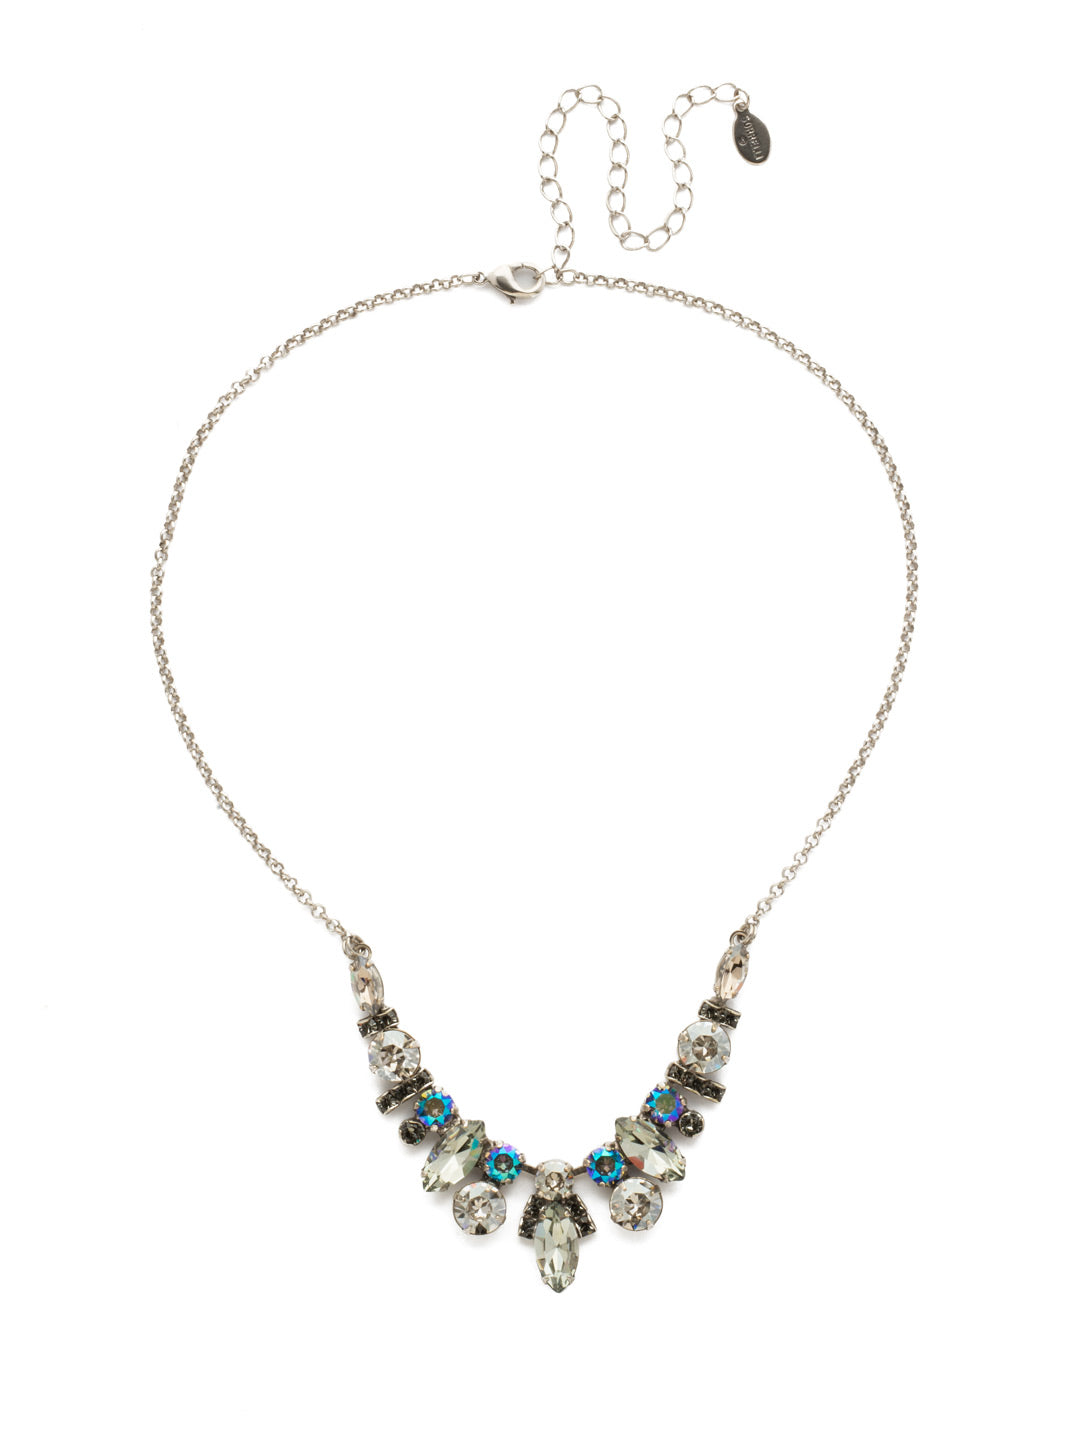 Noveau Navette Statement Necklace - NDG90ASCRO